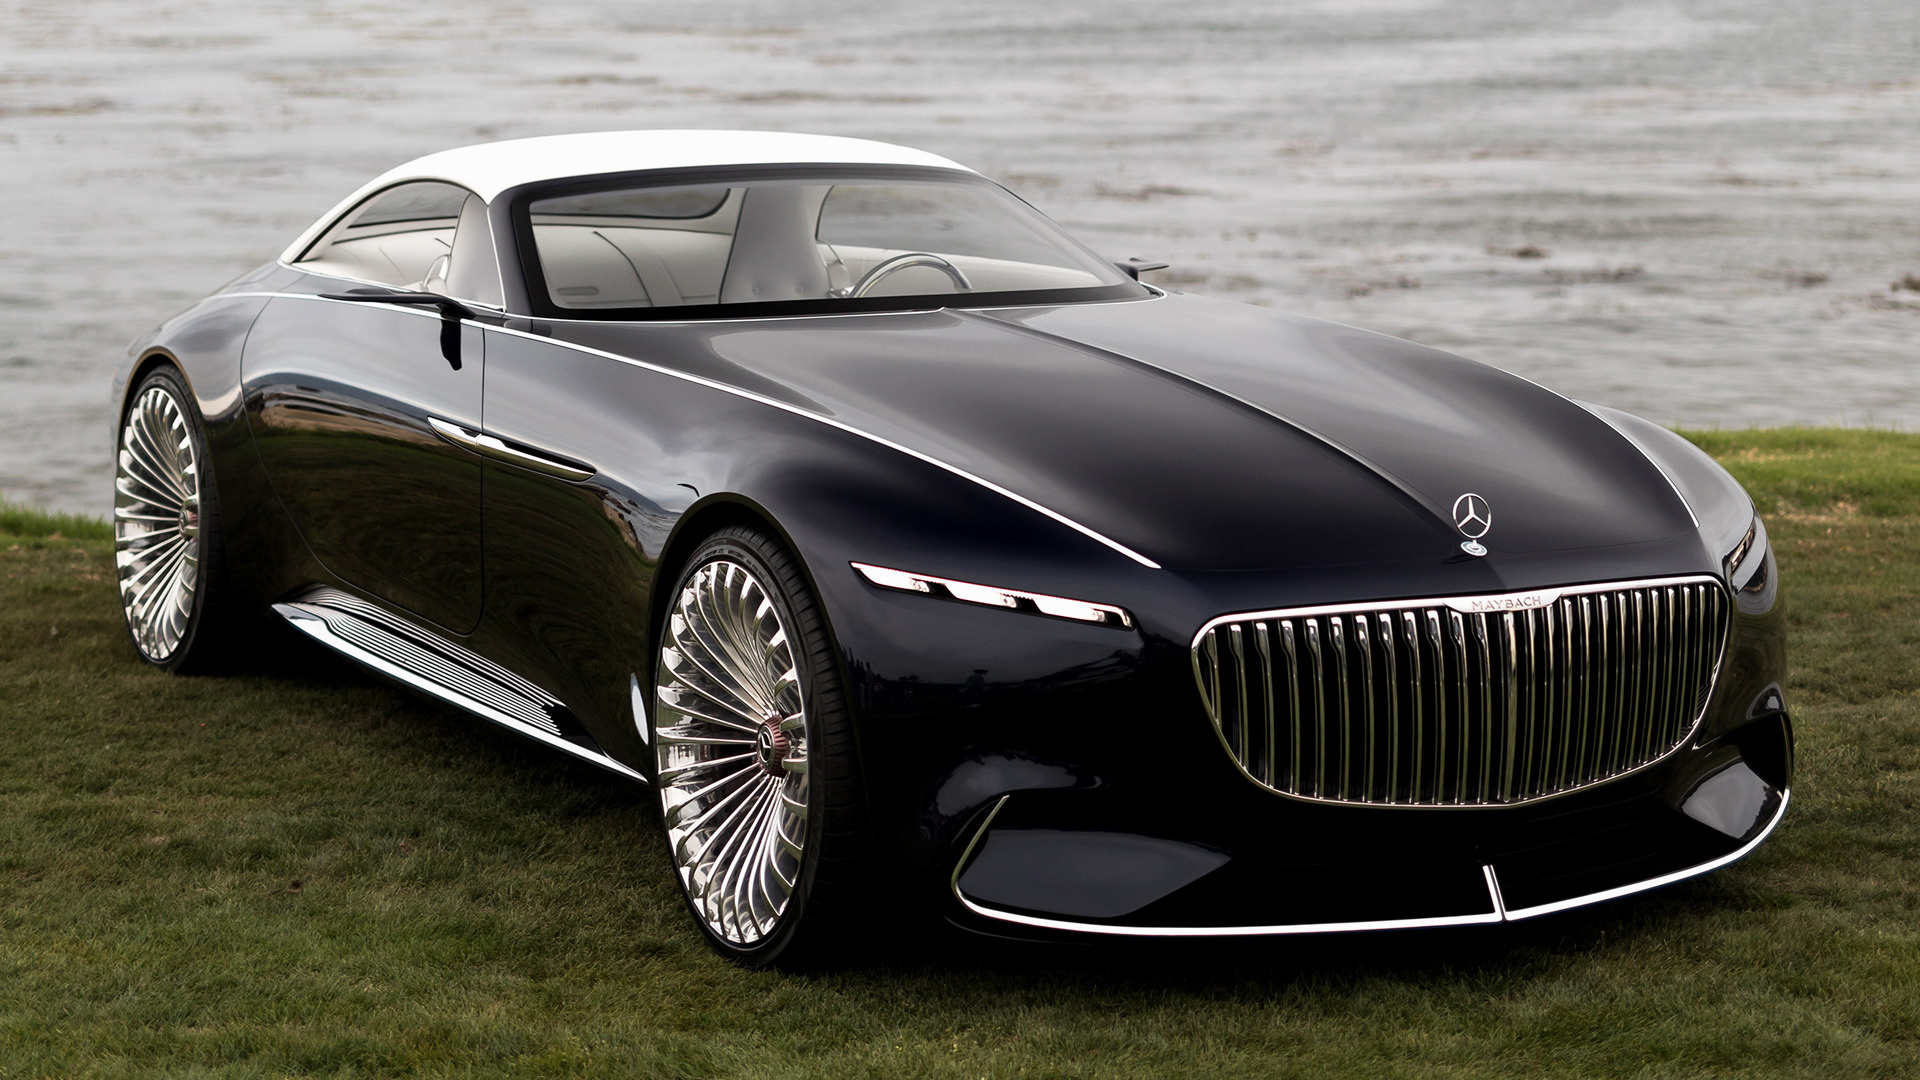 2017 Vision Mercedes Maybach 6 Cabriolet Wallpapers And